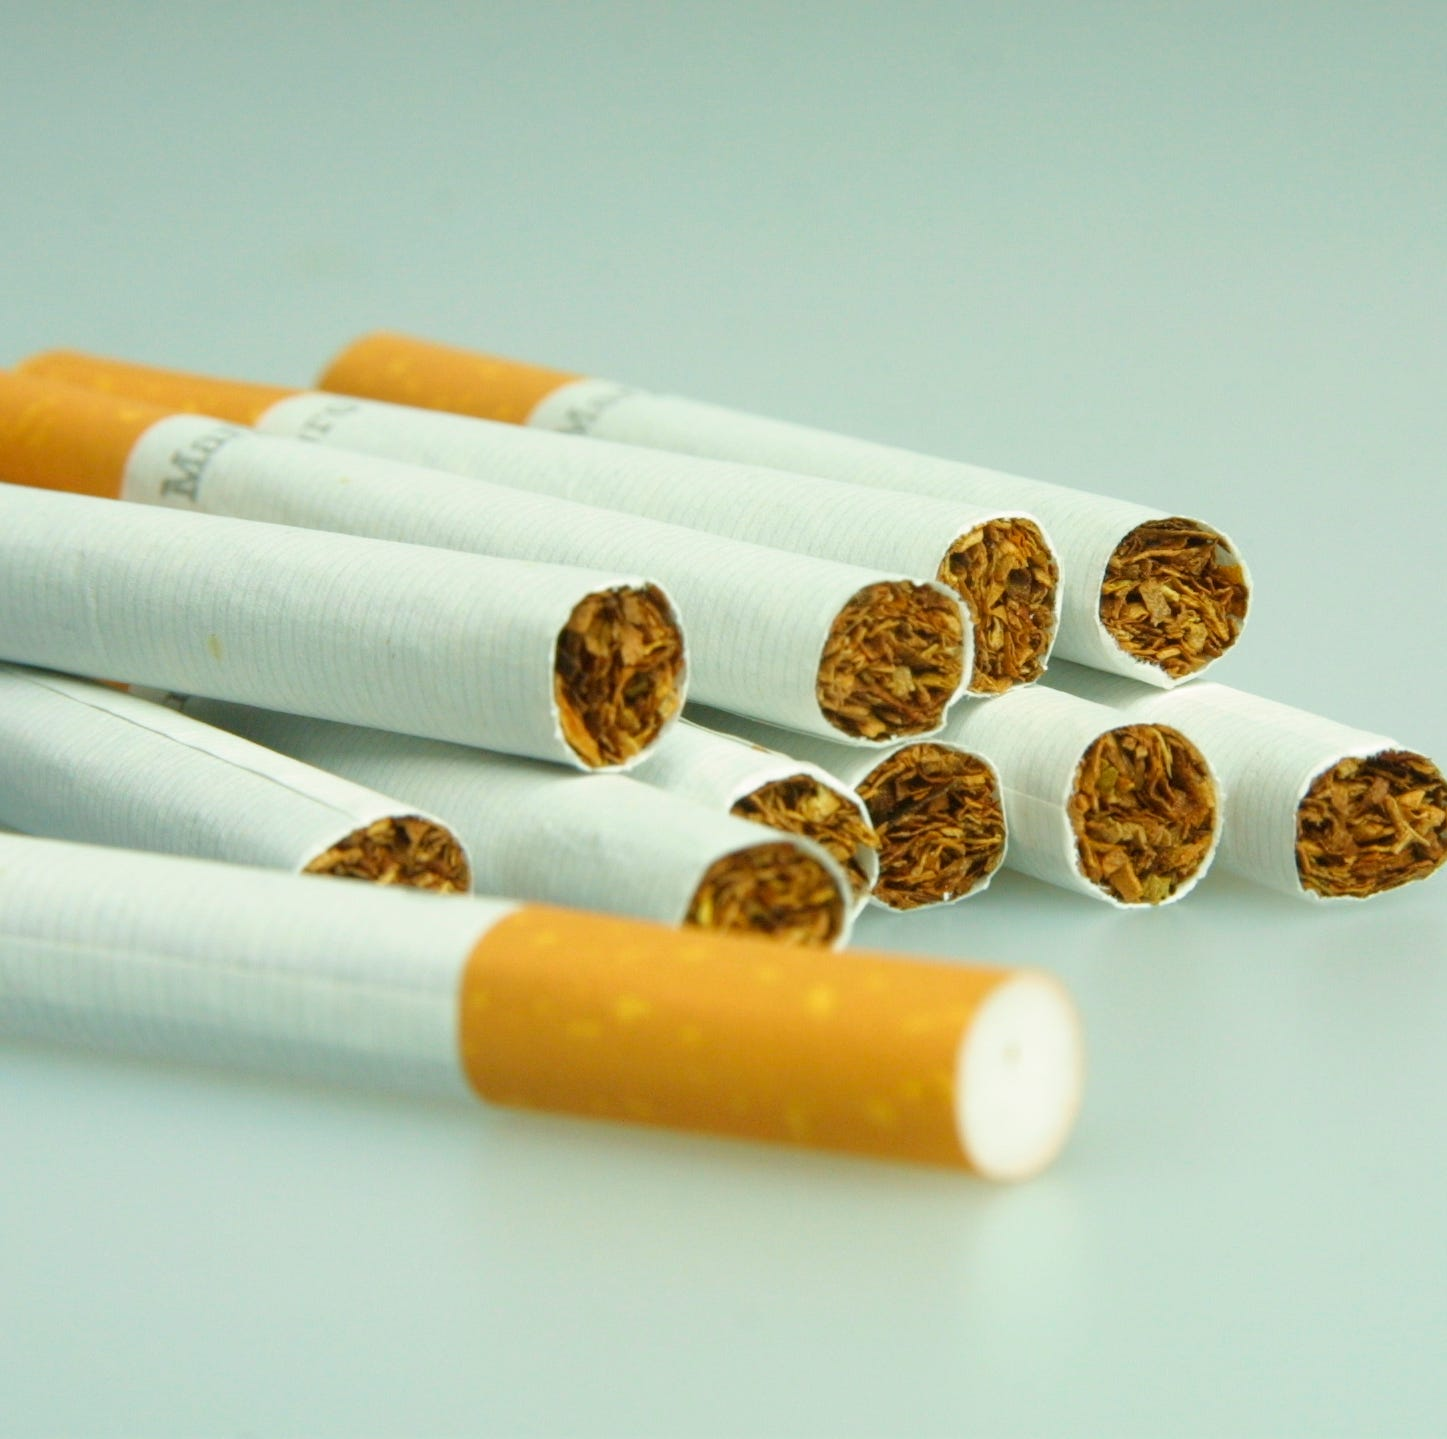 Reduce addiction, death by banning tobacco sales until age 21   Guest column